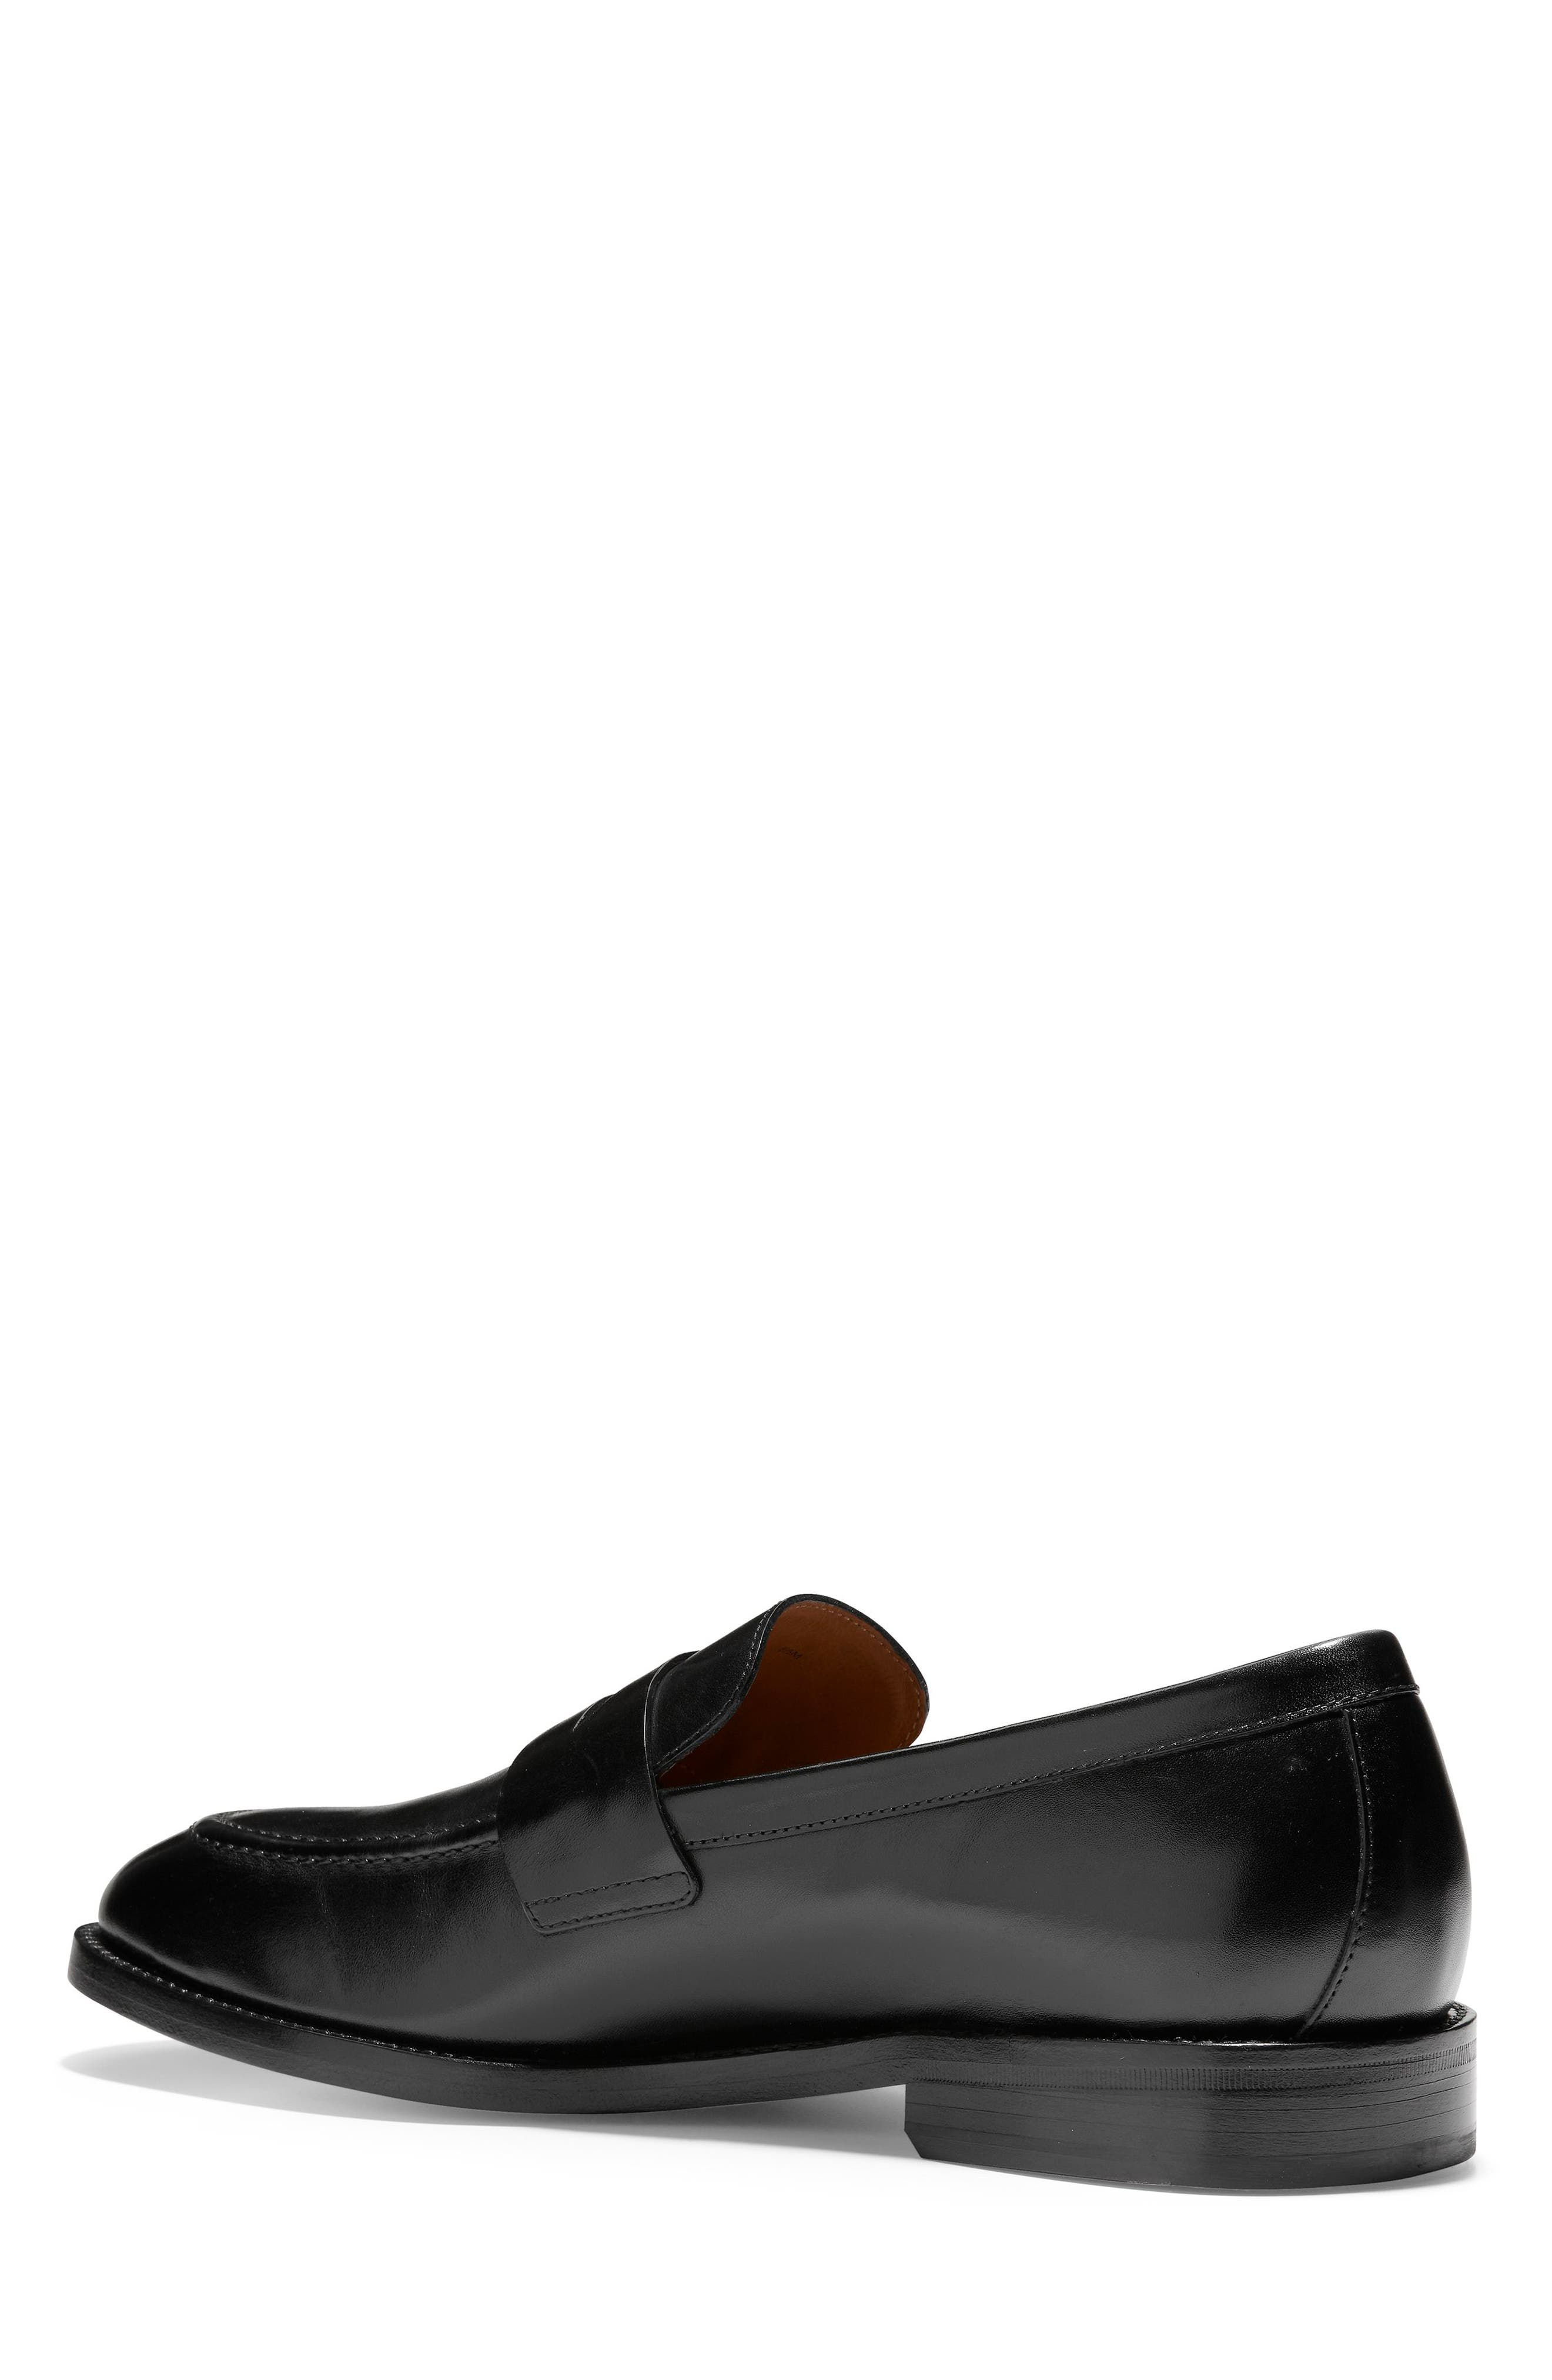 American Classics Kneeland Penny Loafer,                             Alternate thumbnail 2, color,                             BLACK LEATHER